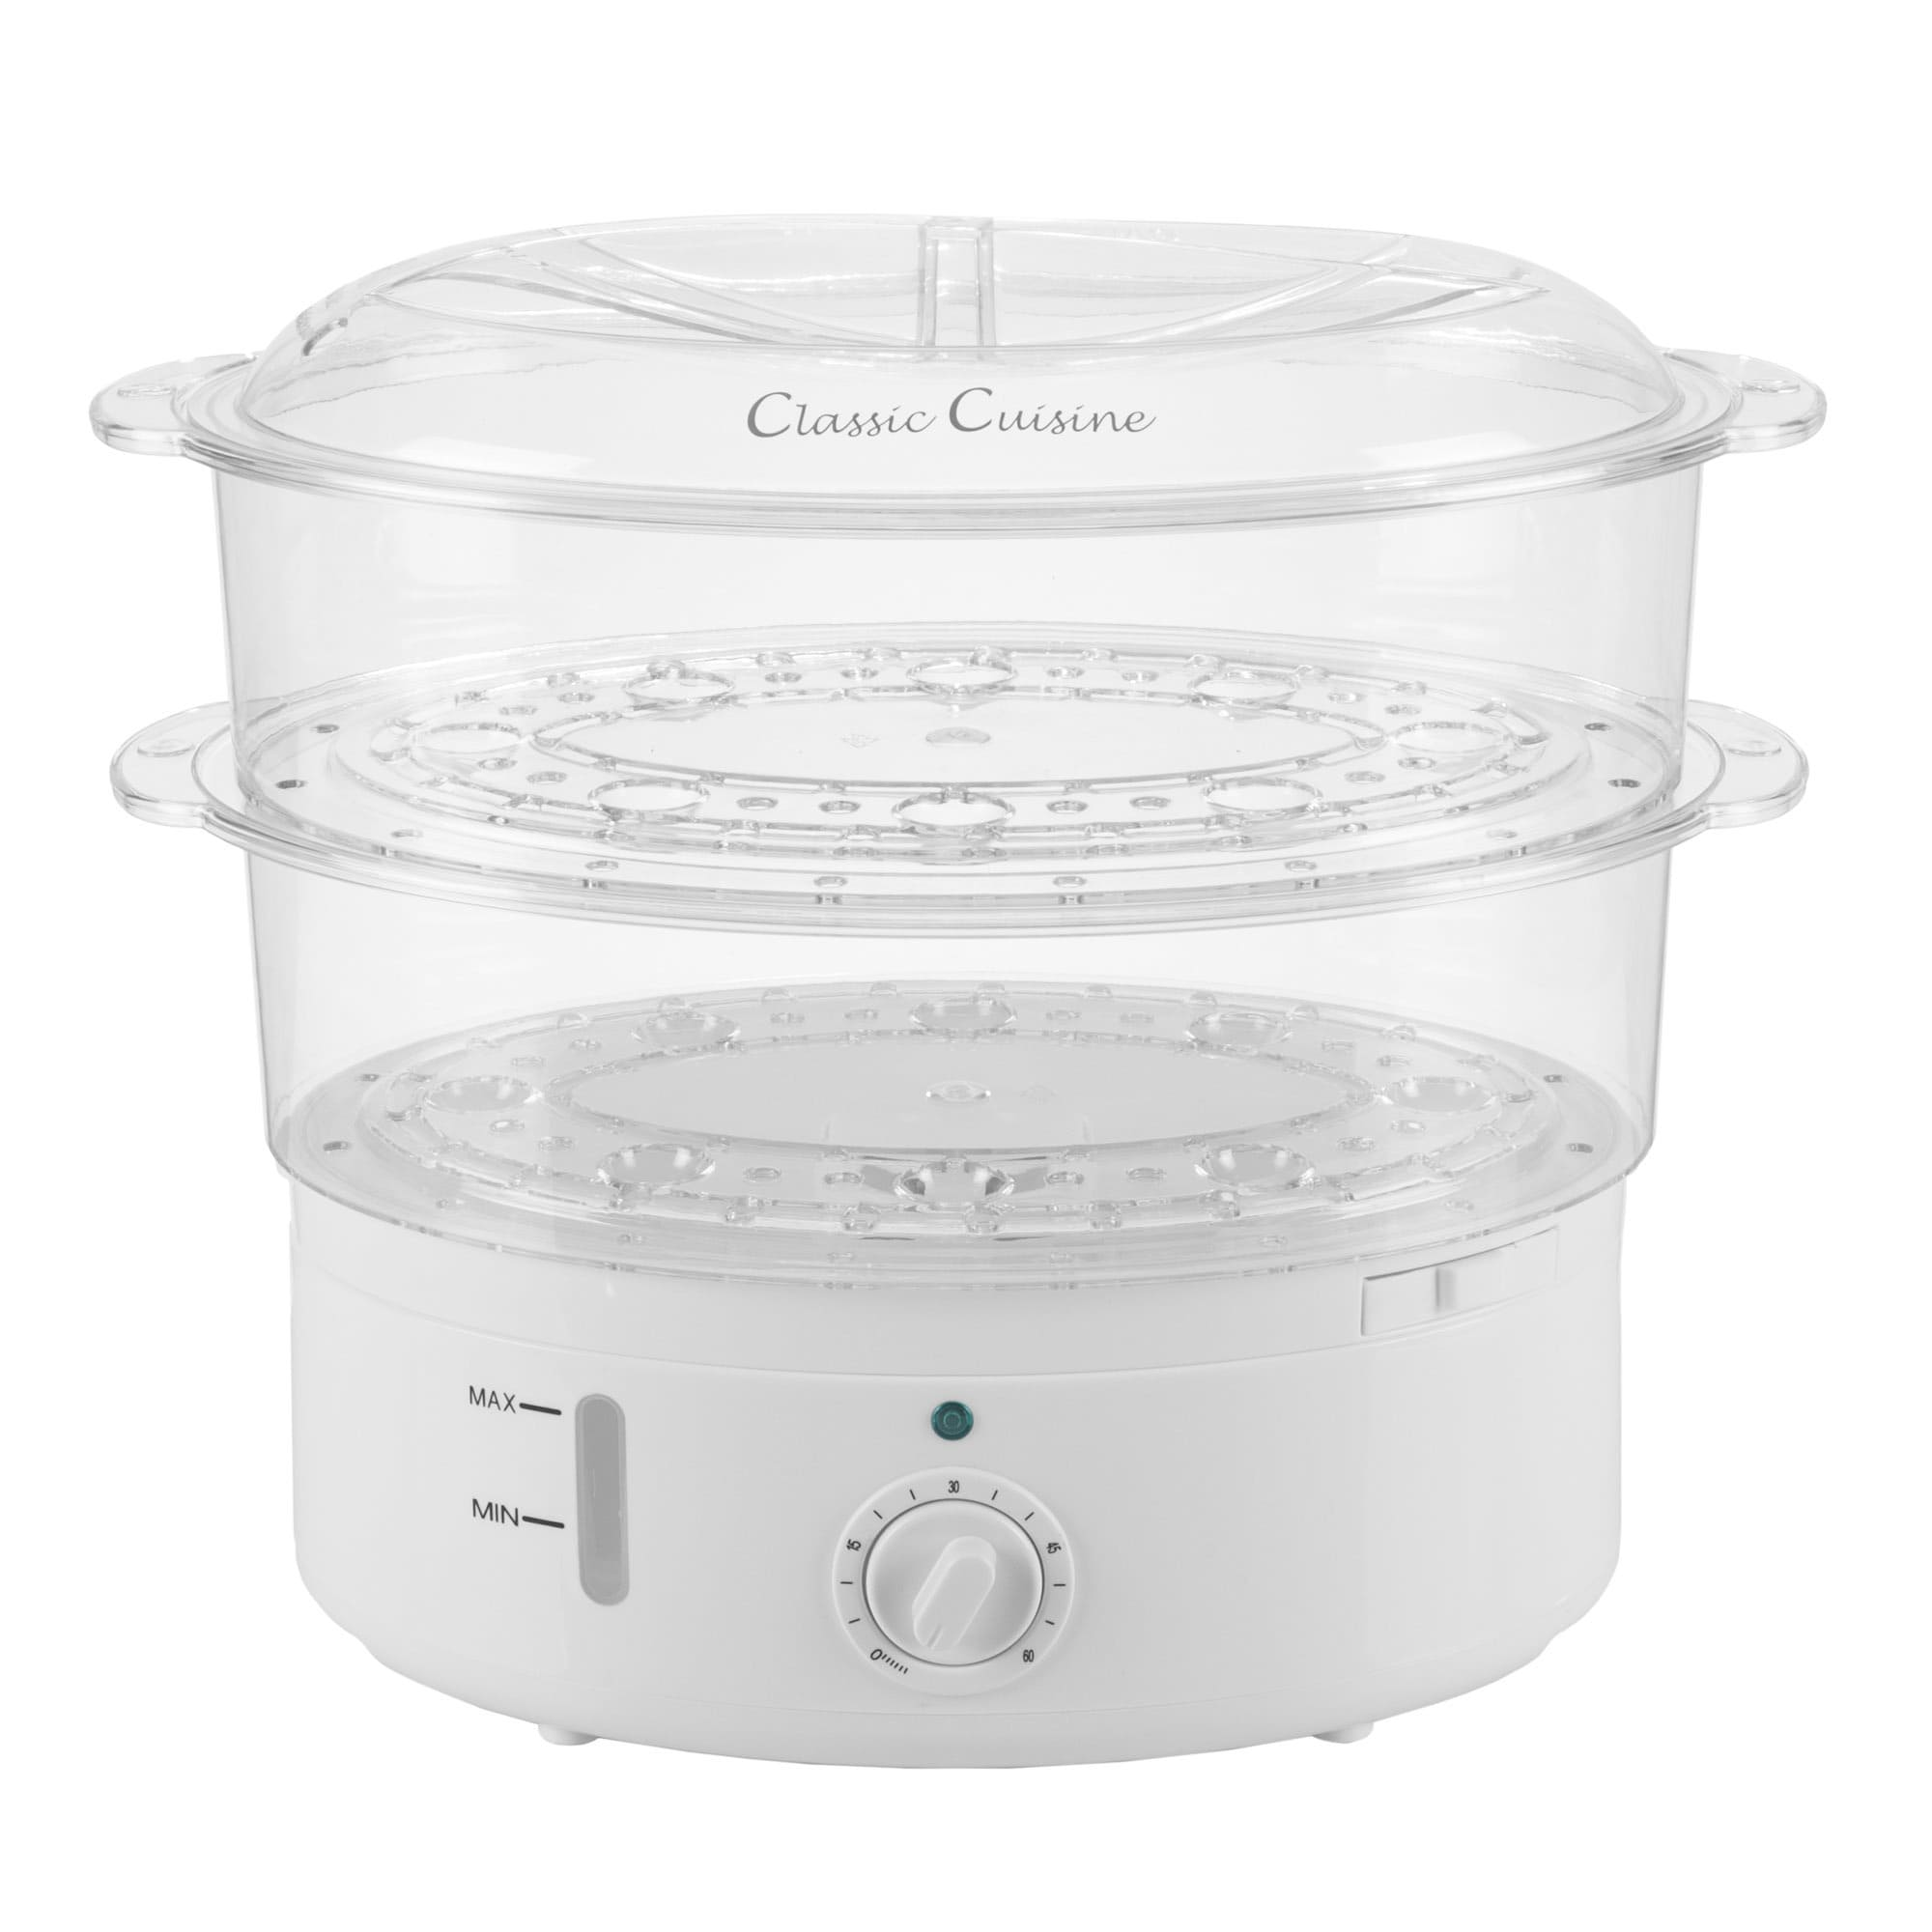 Vegetable Steamer Rice Cooker- 6.3 Quart Electric Steam A...